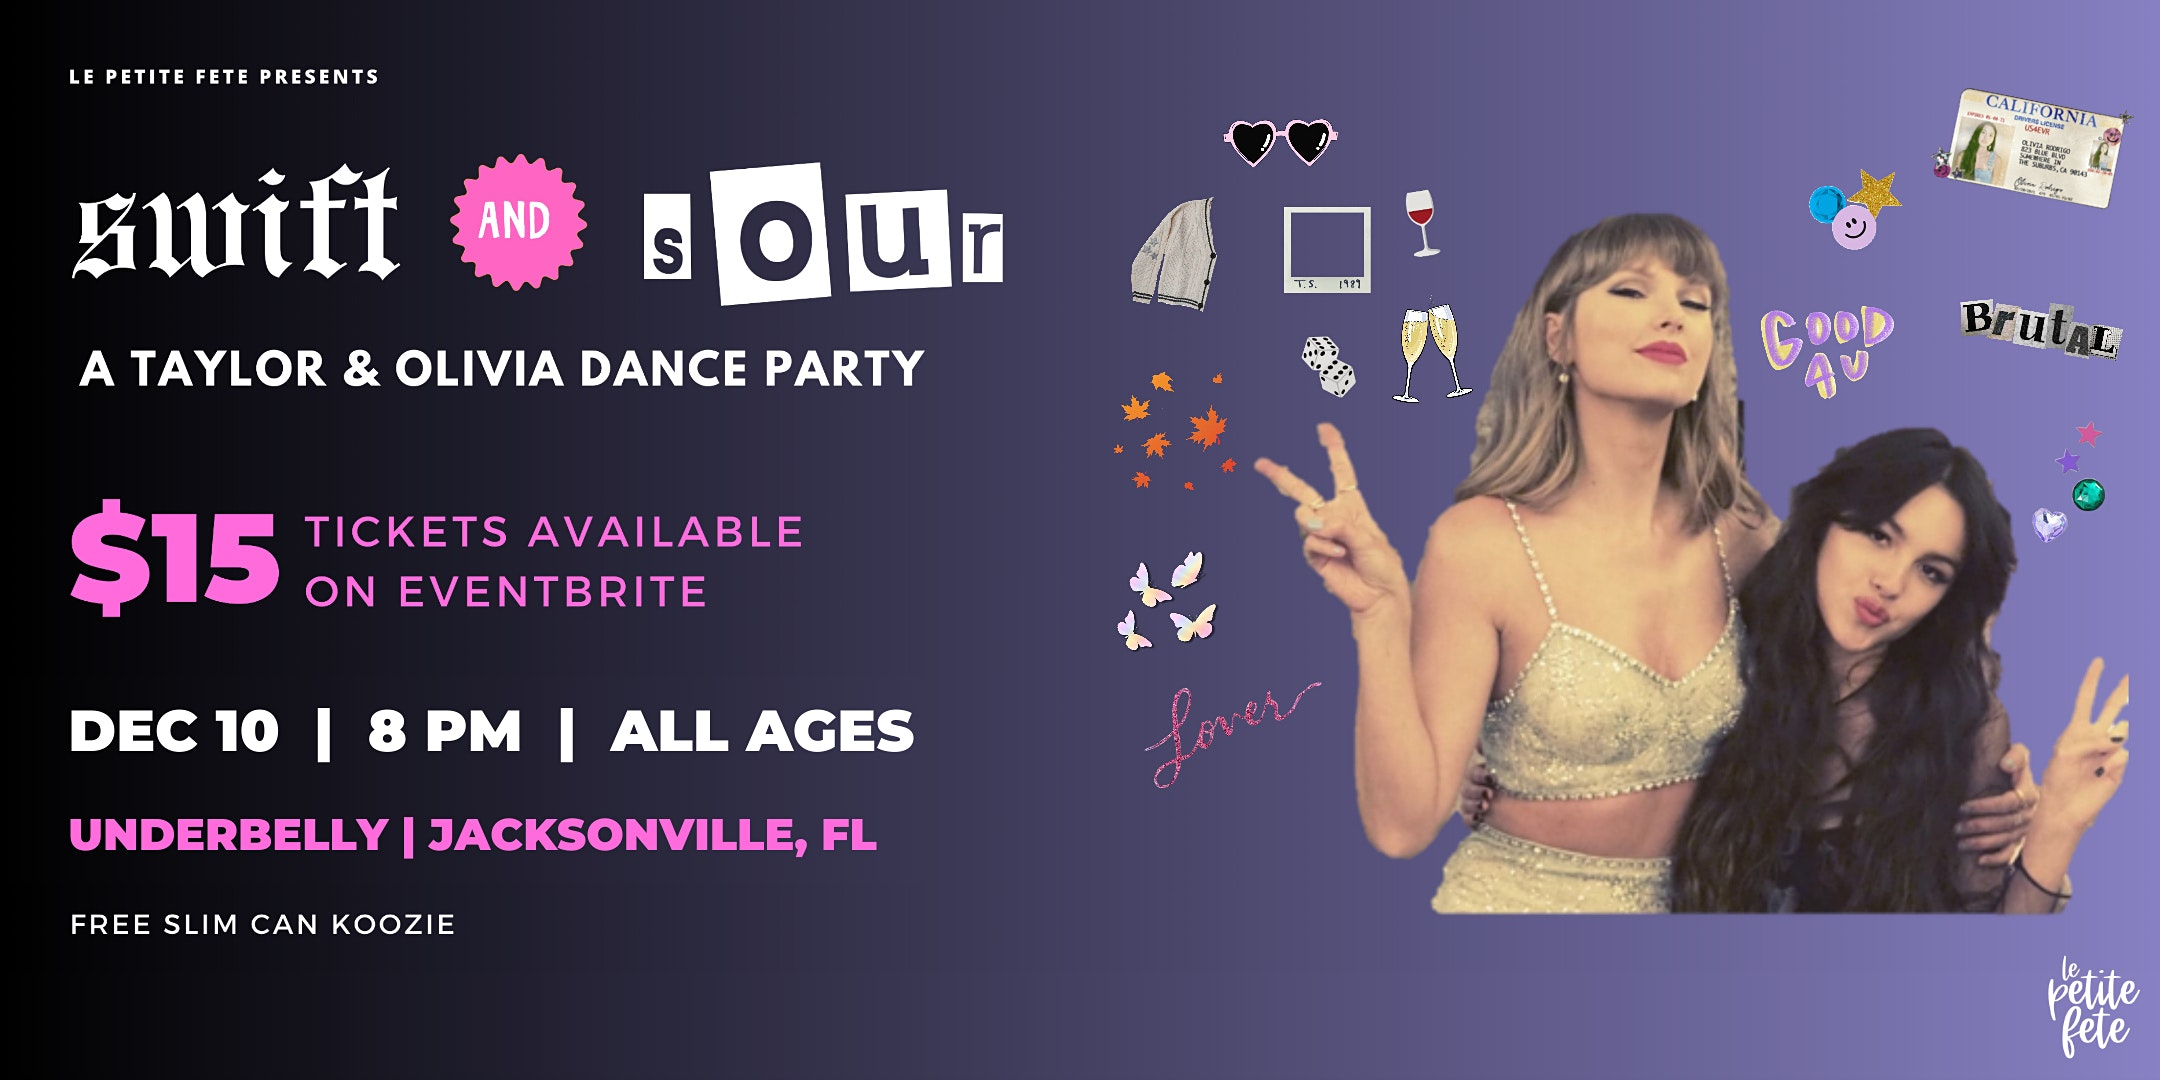 Swift & Sour: A Taylor & Olivia Dance Party in Jacksonville